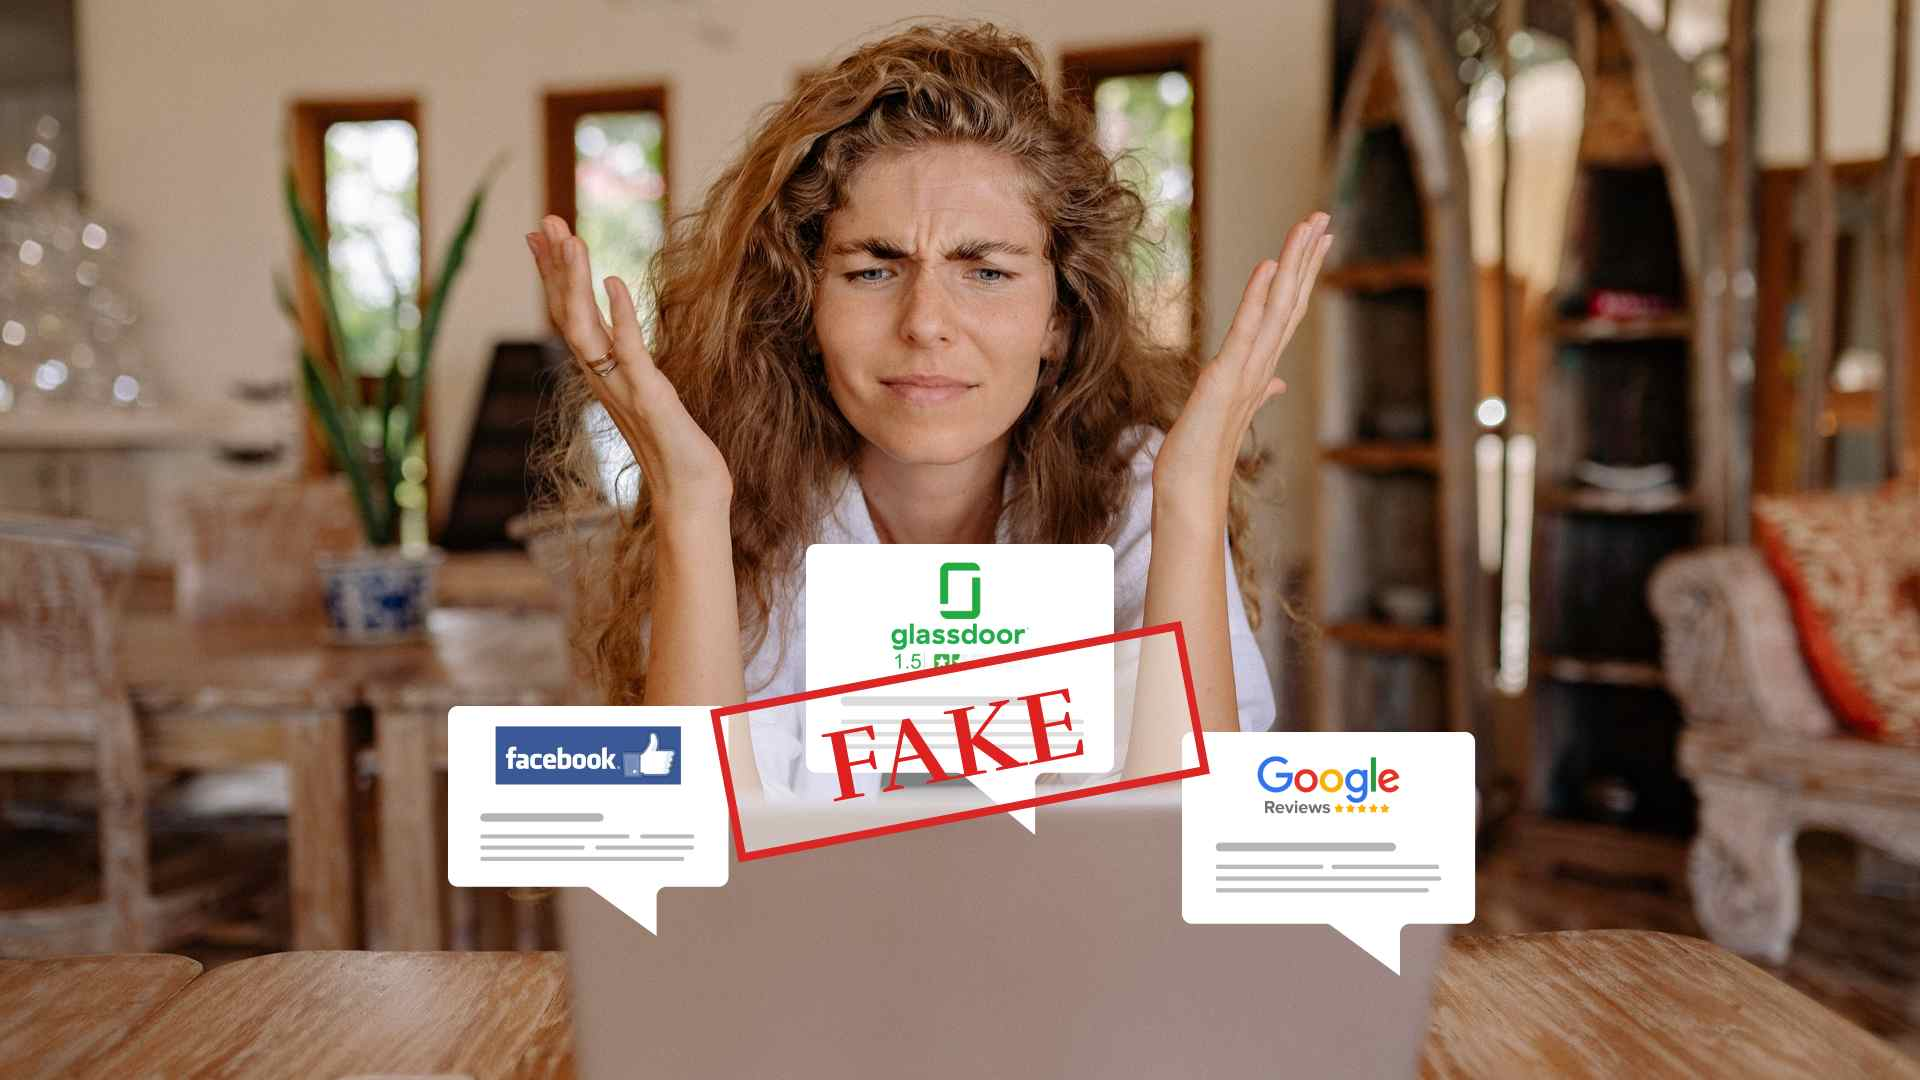 Blue Ocean Global Technology-Manage Fake Reviews on Google, Facebook, and Glassdoor